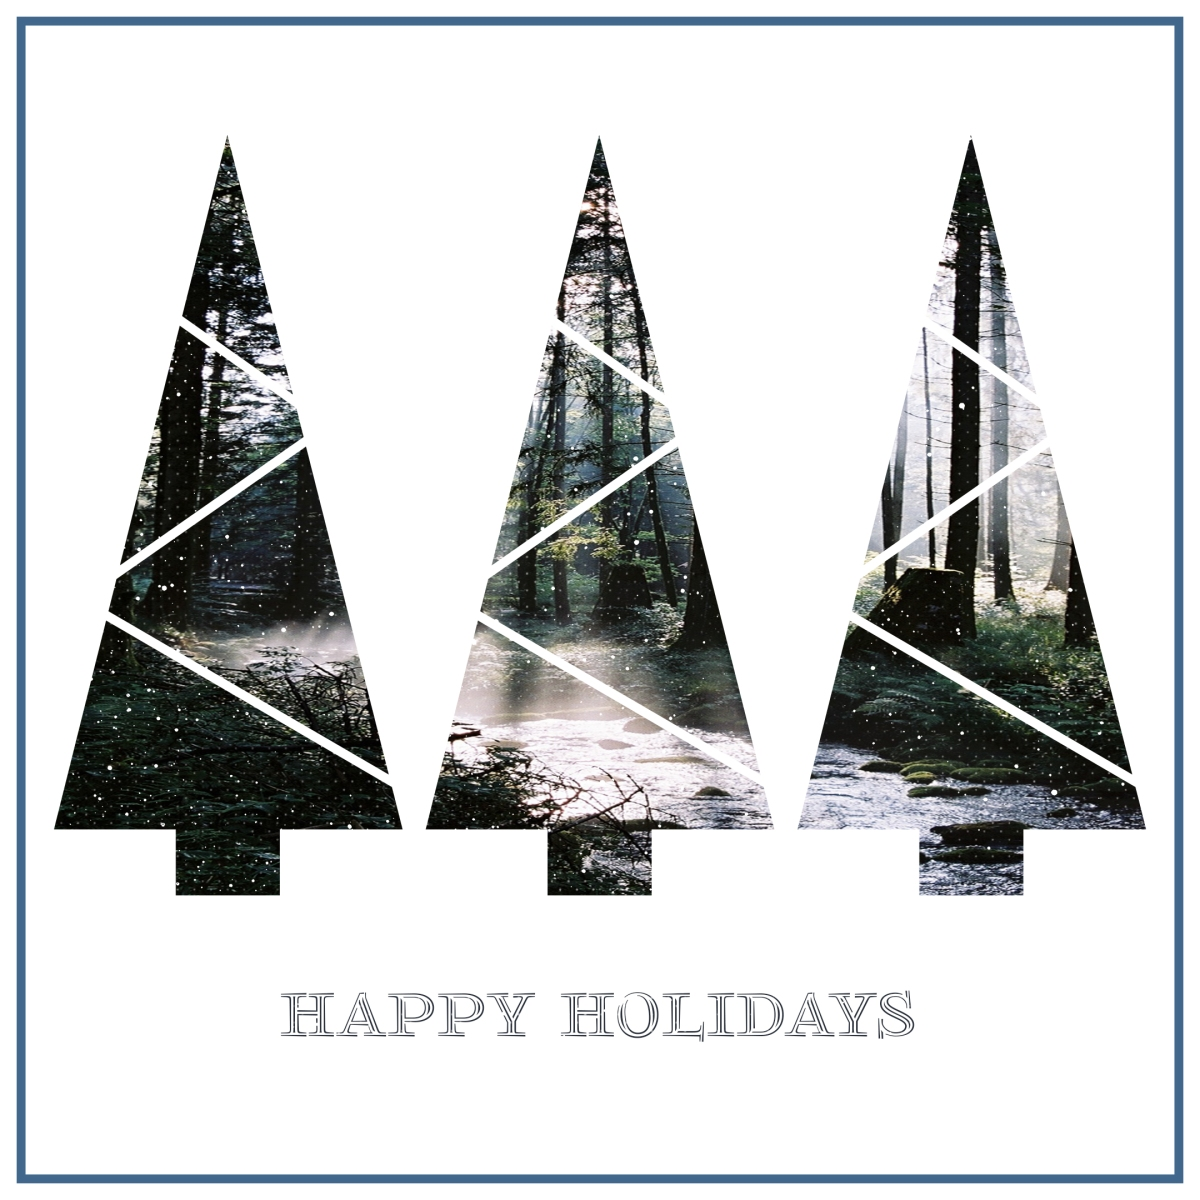 Happy Holidays - Design by Miss Coco